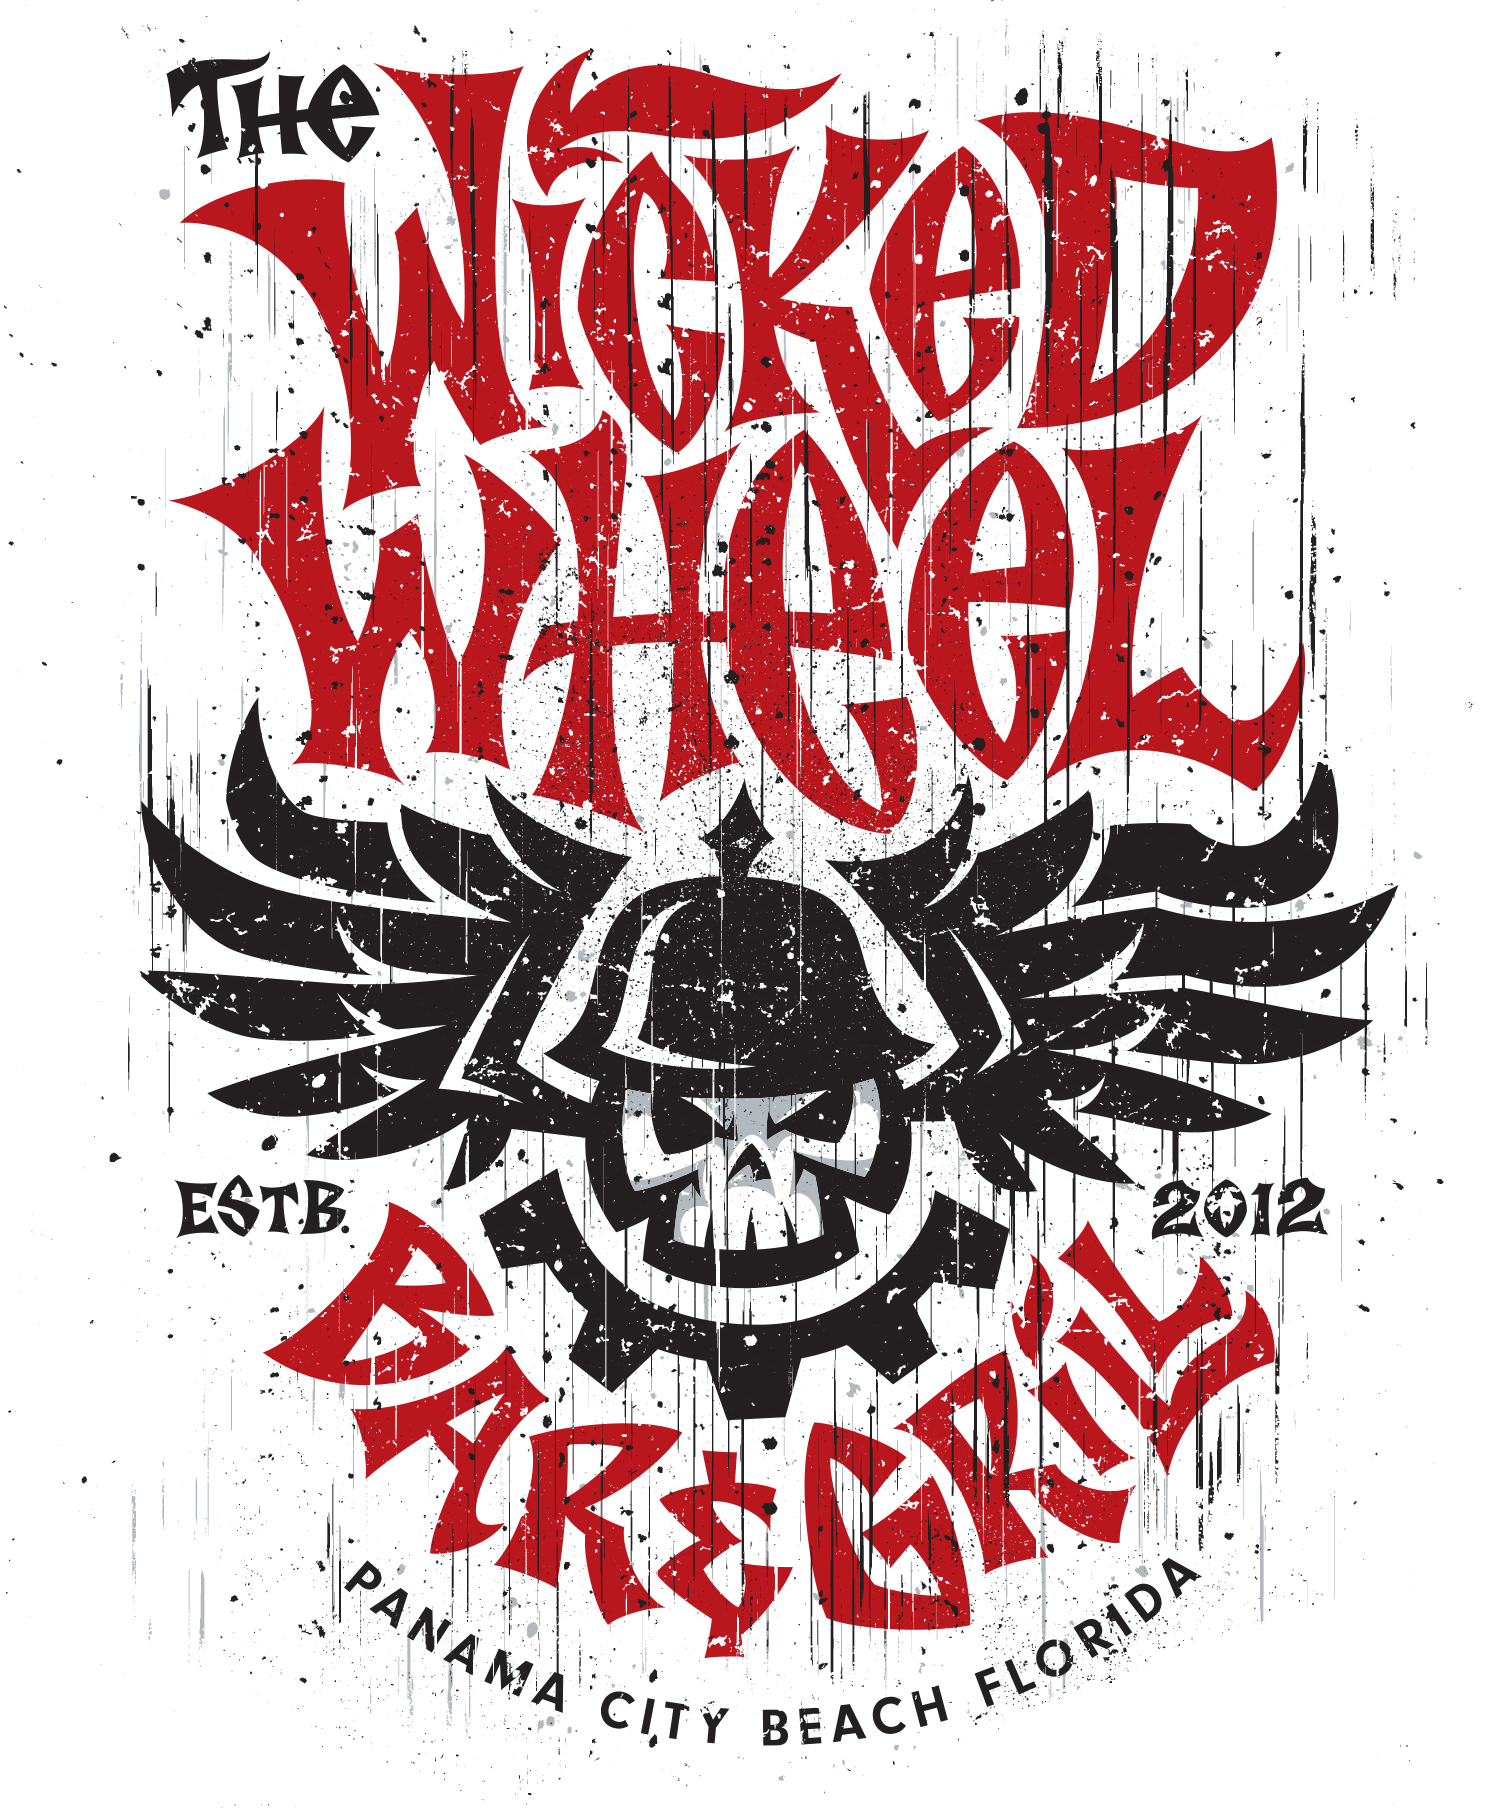 Wicked_Wheel1.jpg